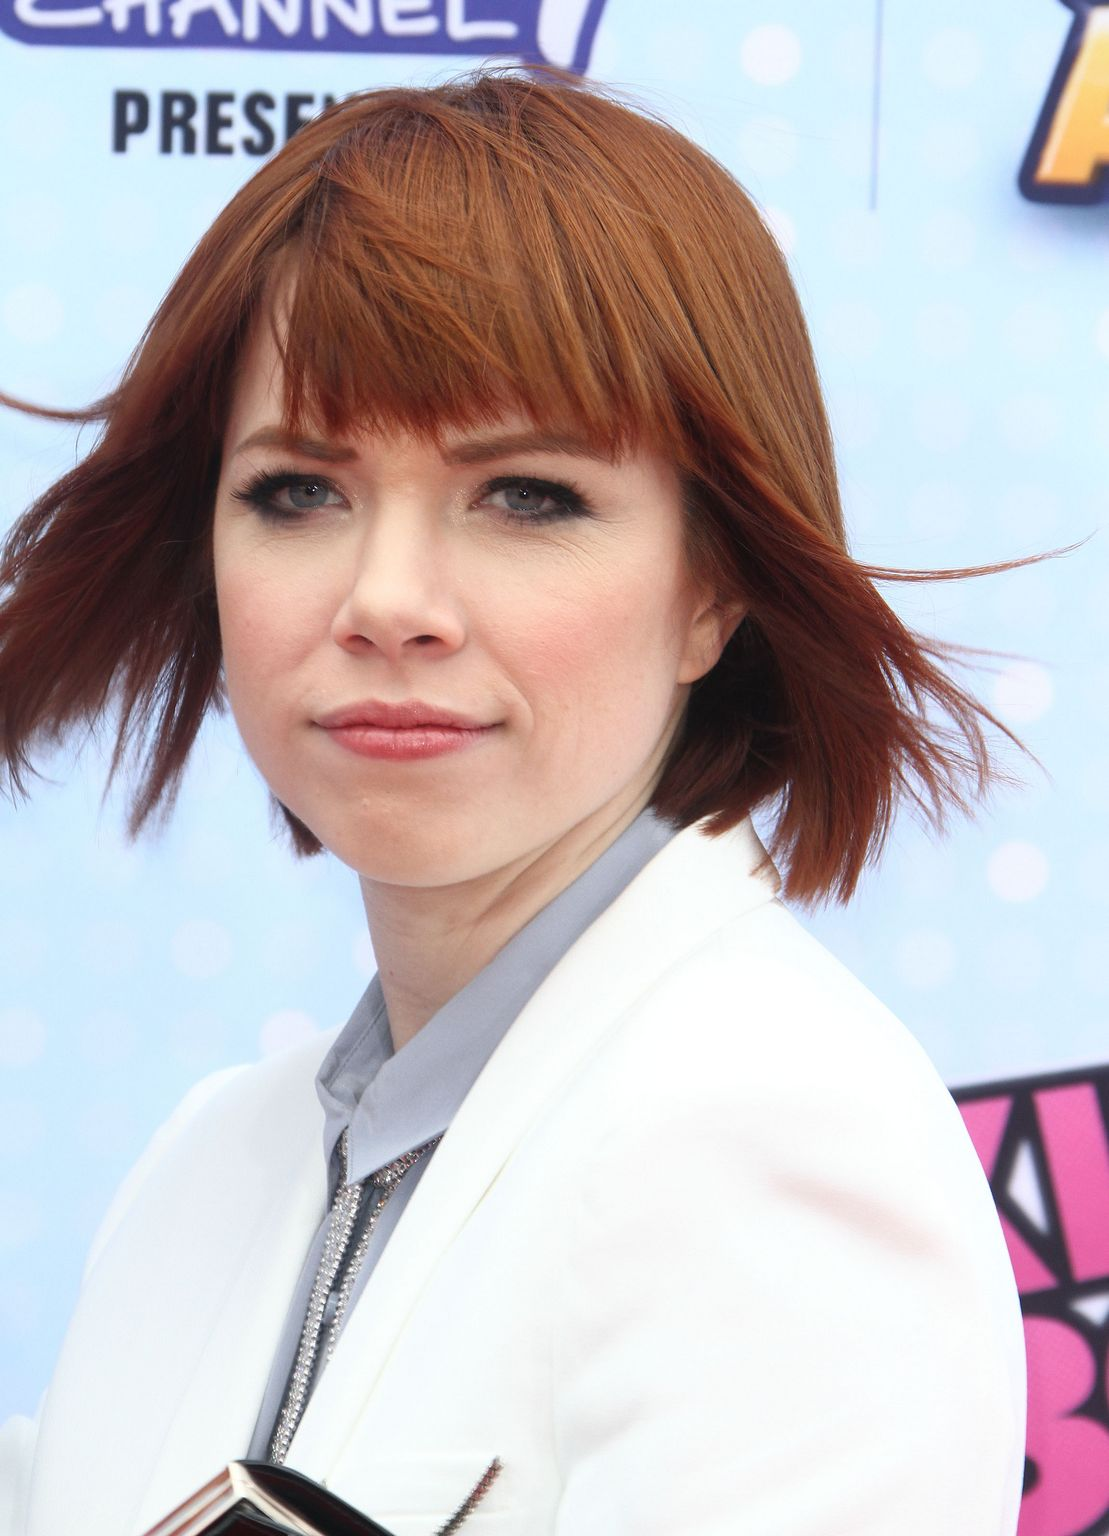 Carly Rae Jepsen at Radio Disney Music Awards-4